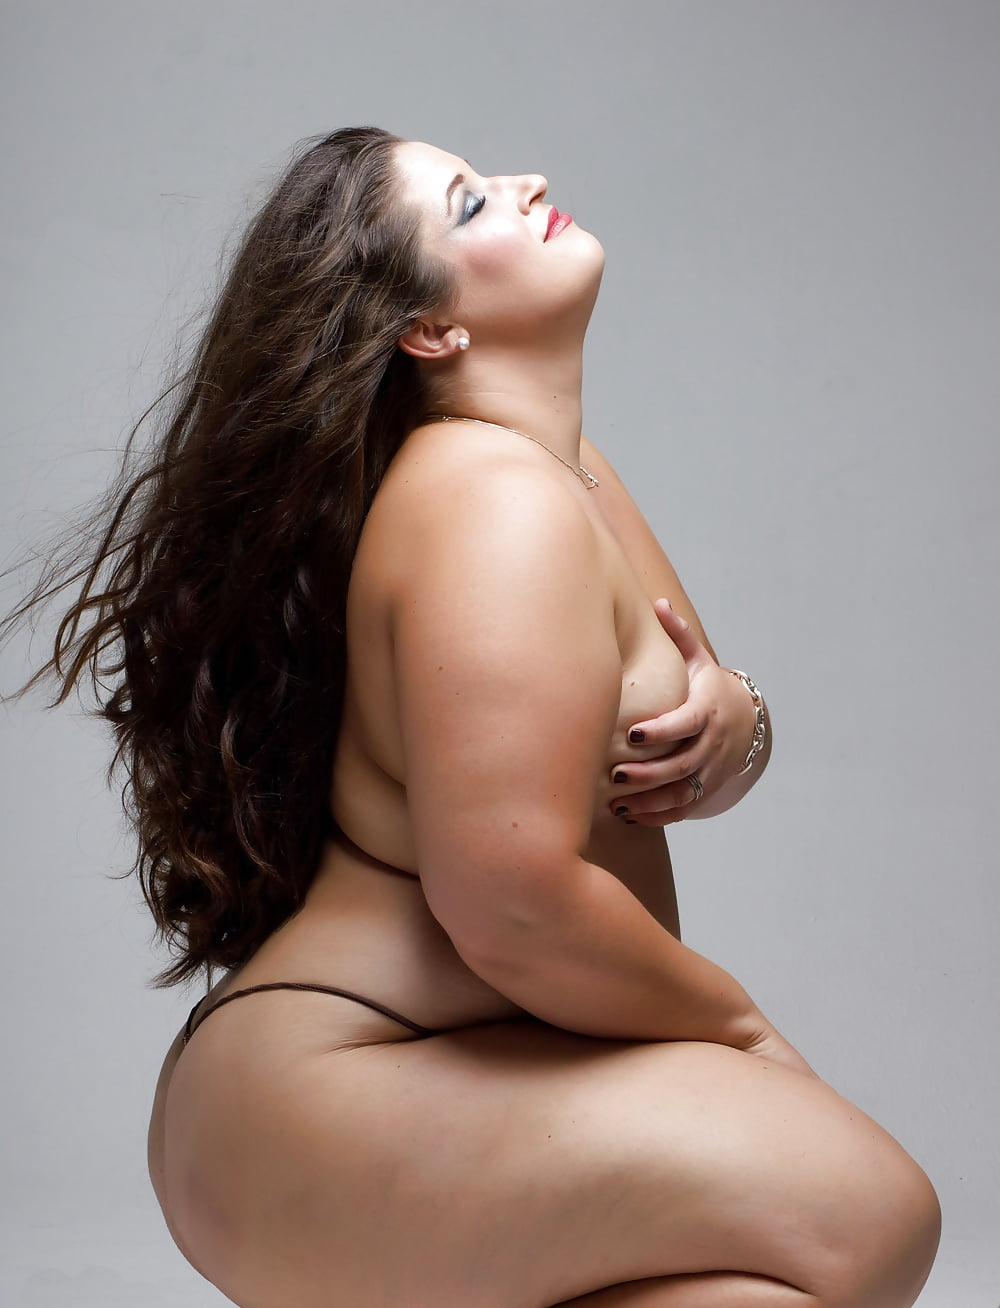 Naked plus size models pictures gallery — 15